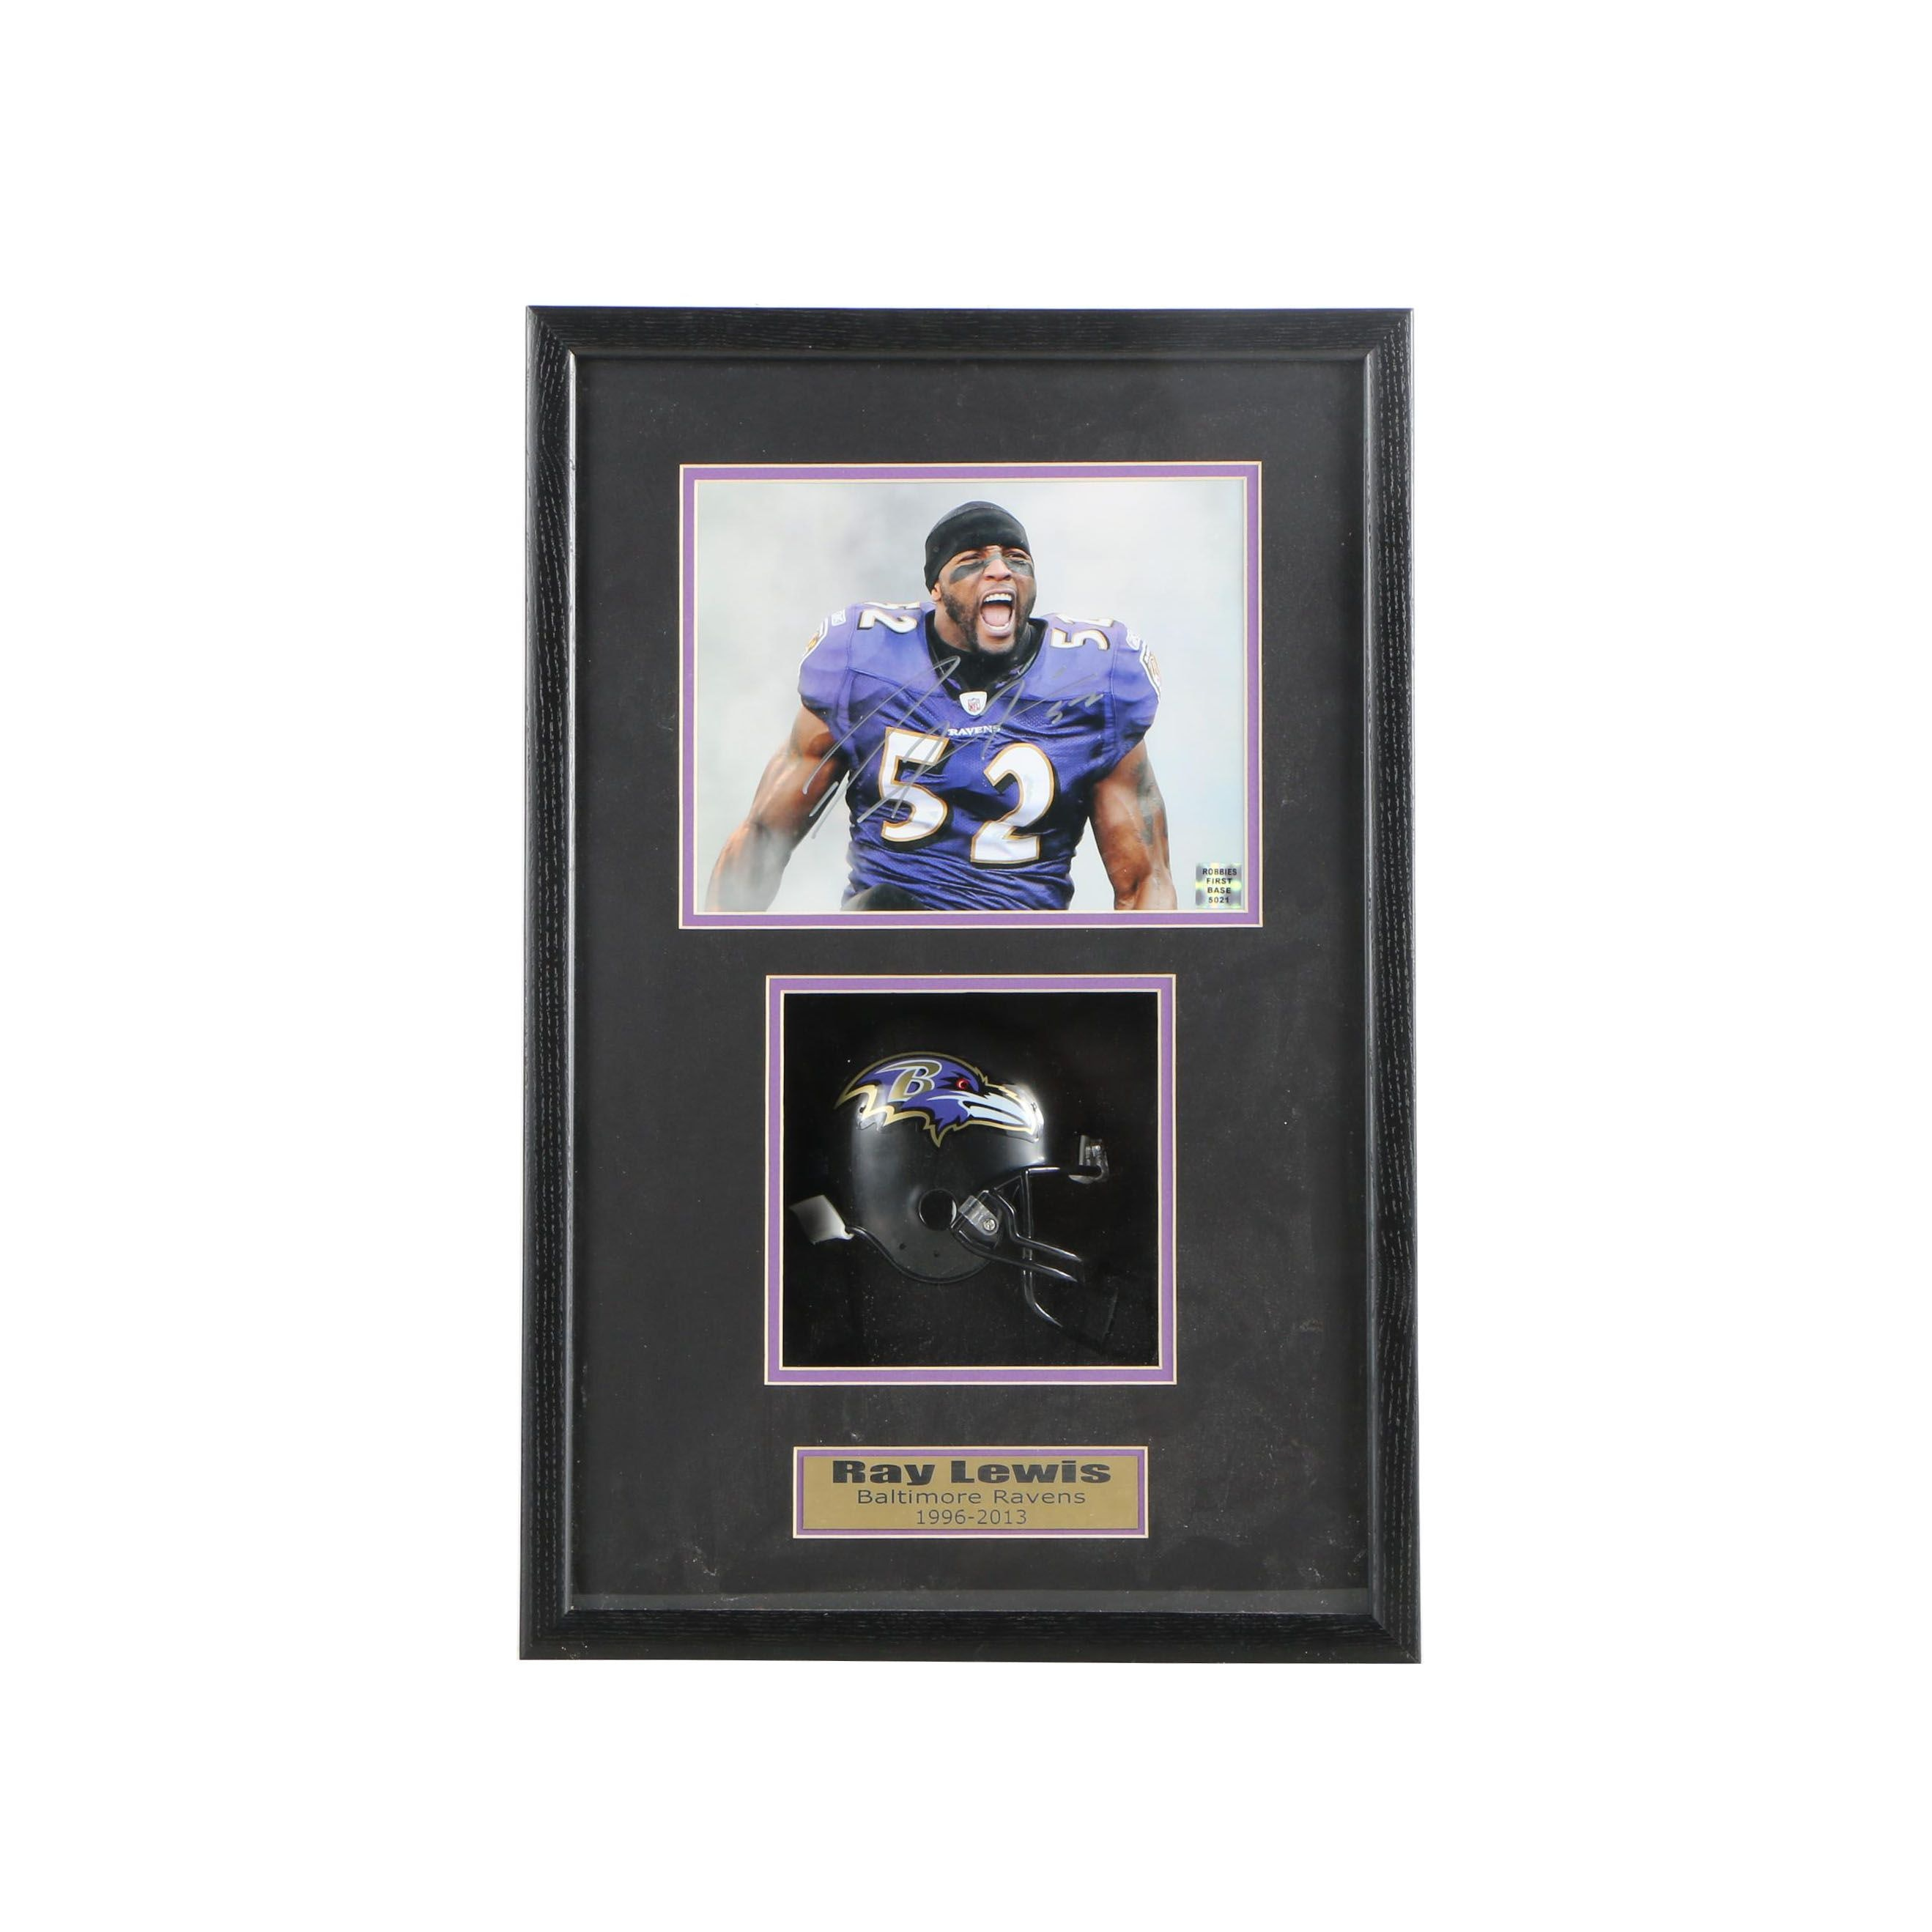 Ray Lewis Autographed Photograph